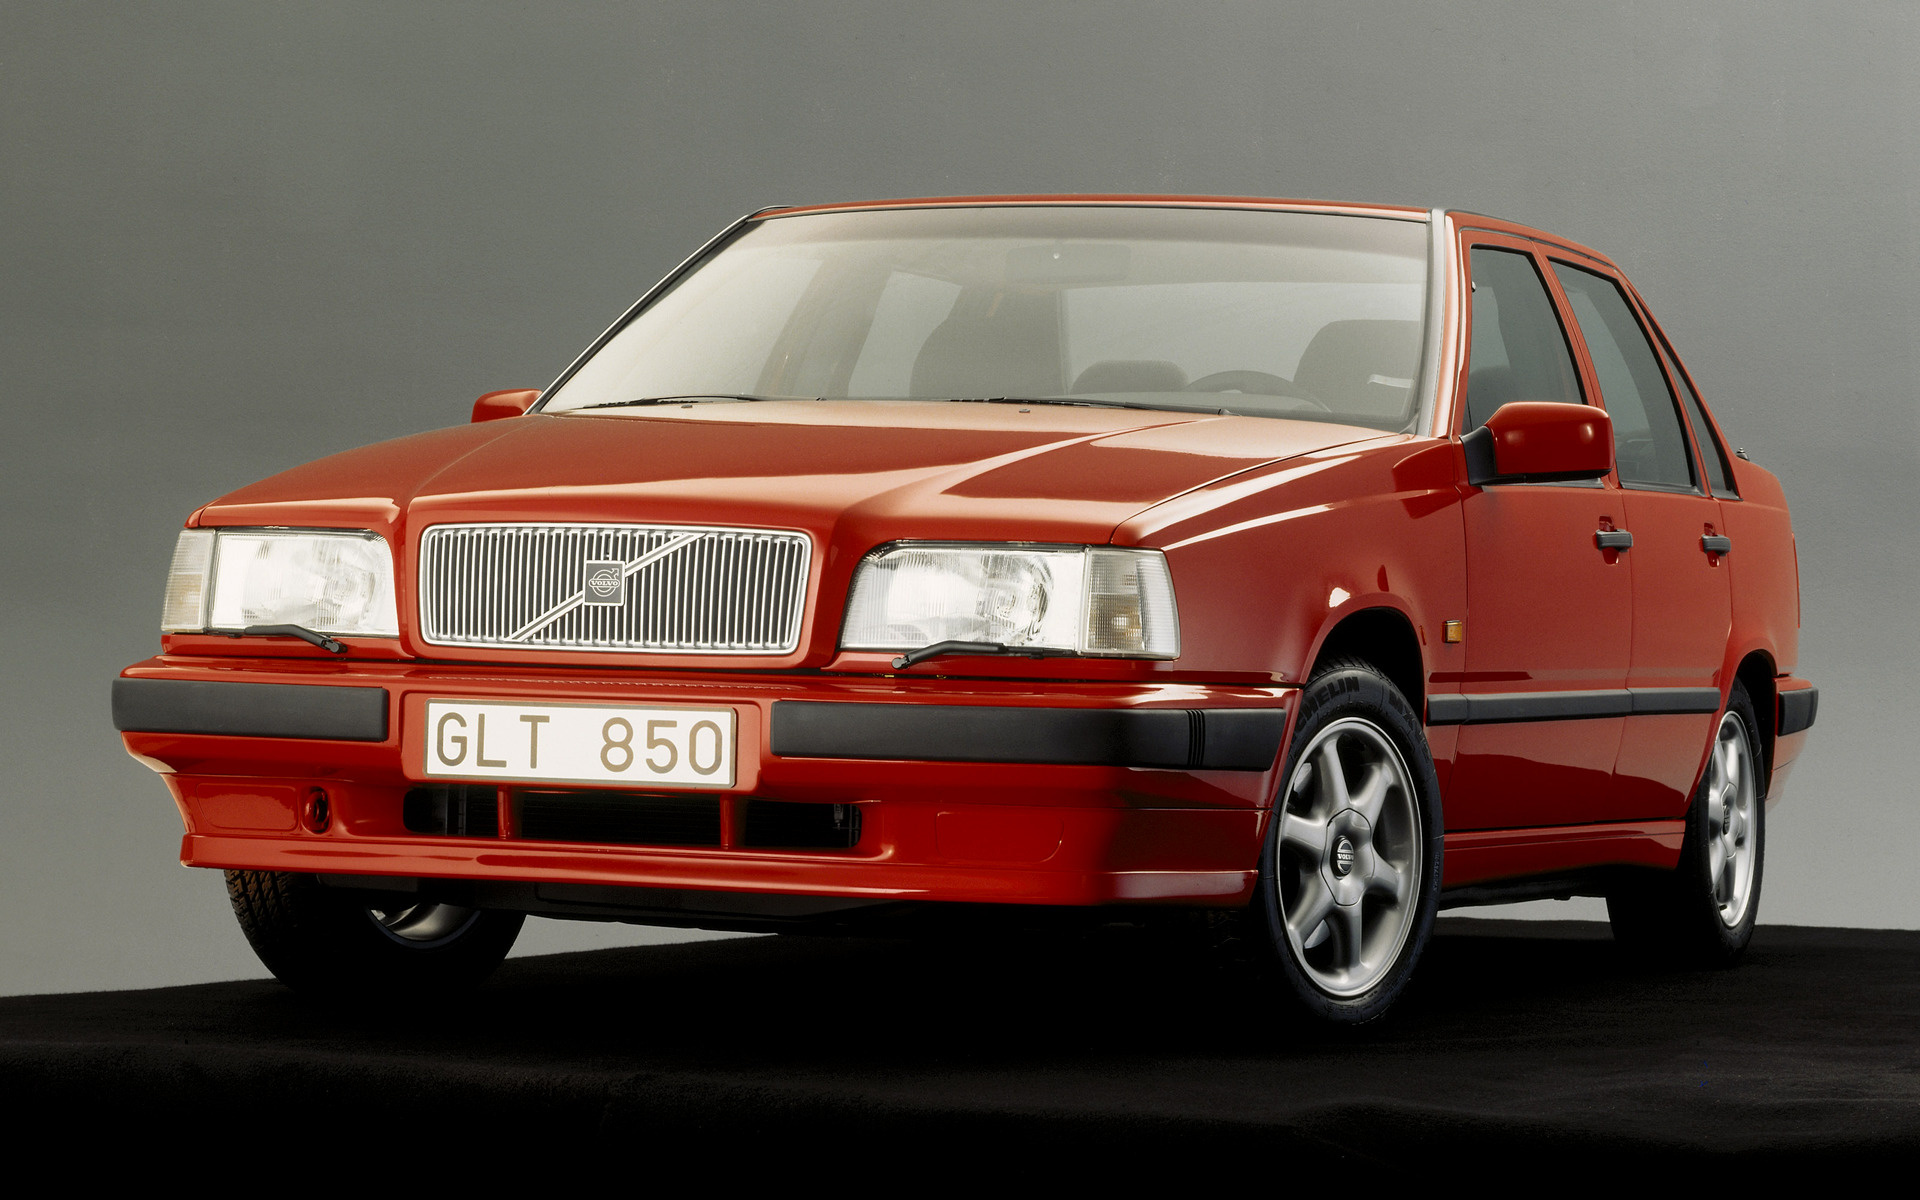 1991 Volvo 850 GLT - Wallpapers and HD Images | Car Pixel